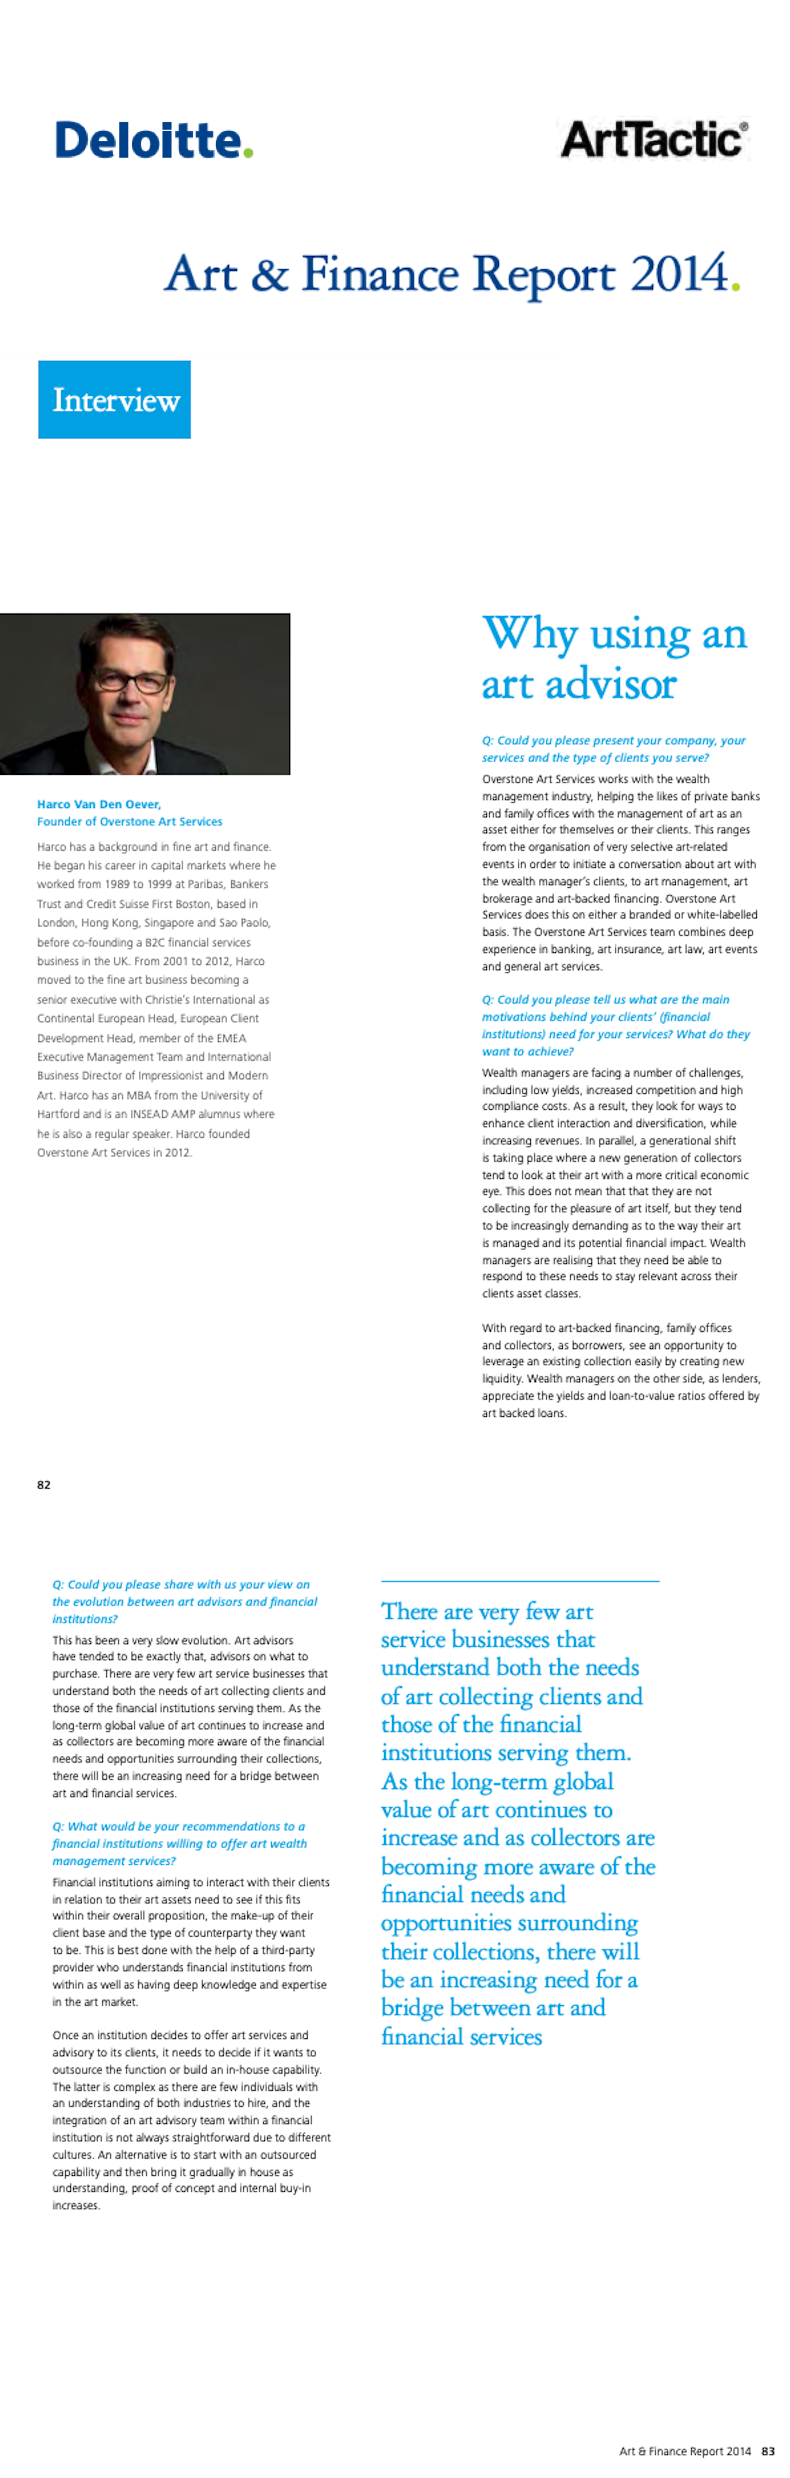 Deloitte Art & Finance Report 2014